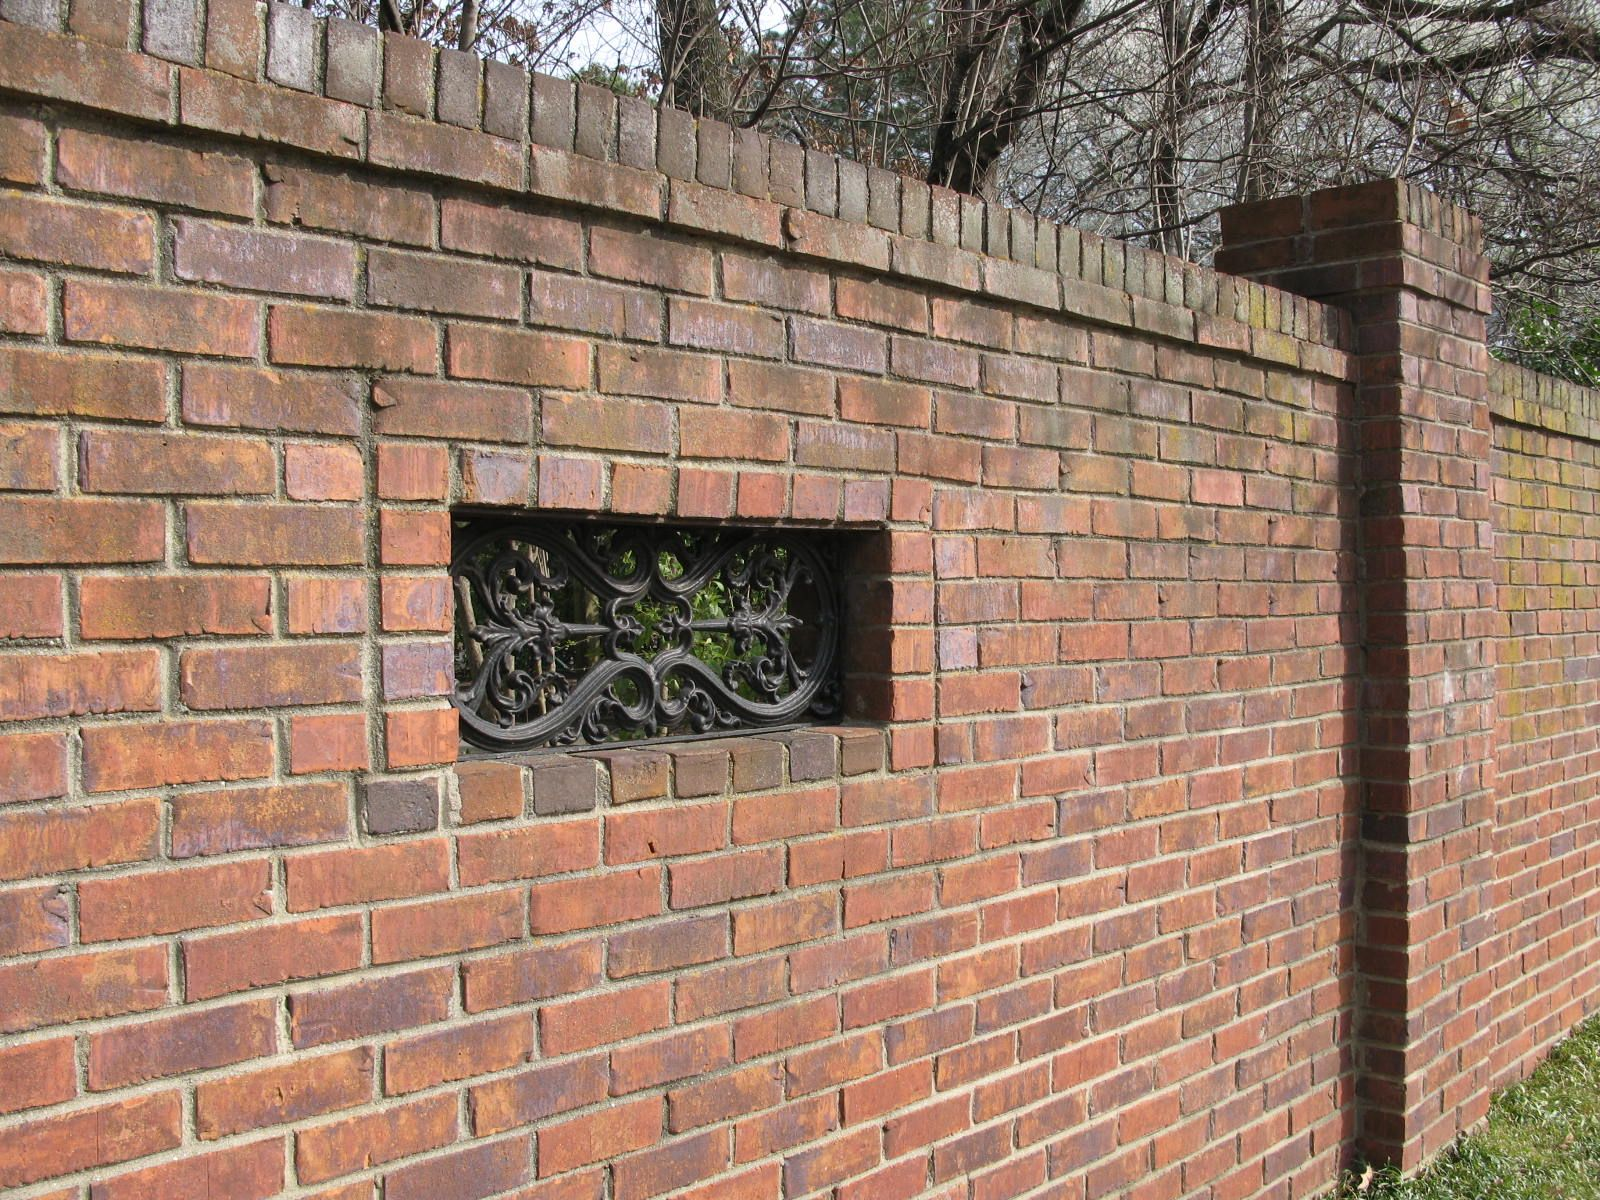 Brick Wall Design Walls And Fences As A Design Element Wrouht Iron Railing